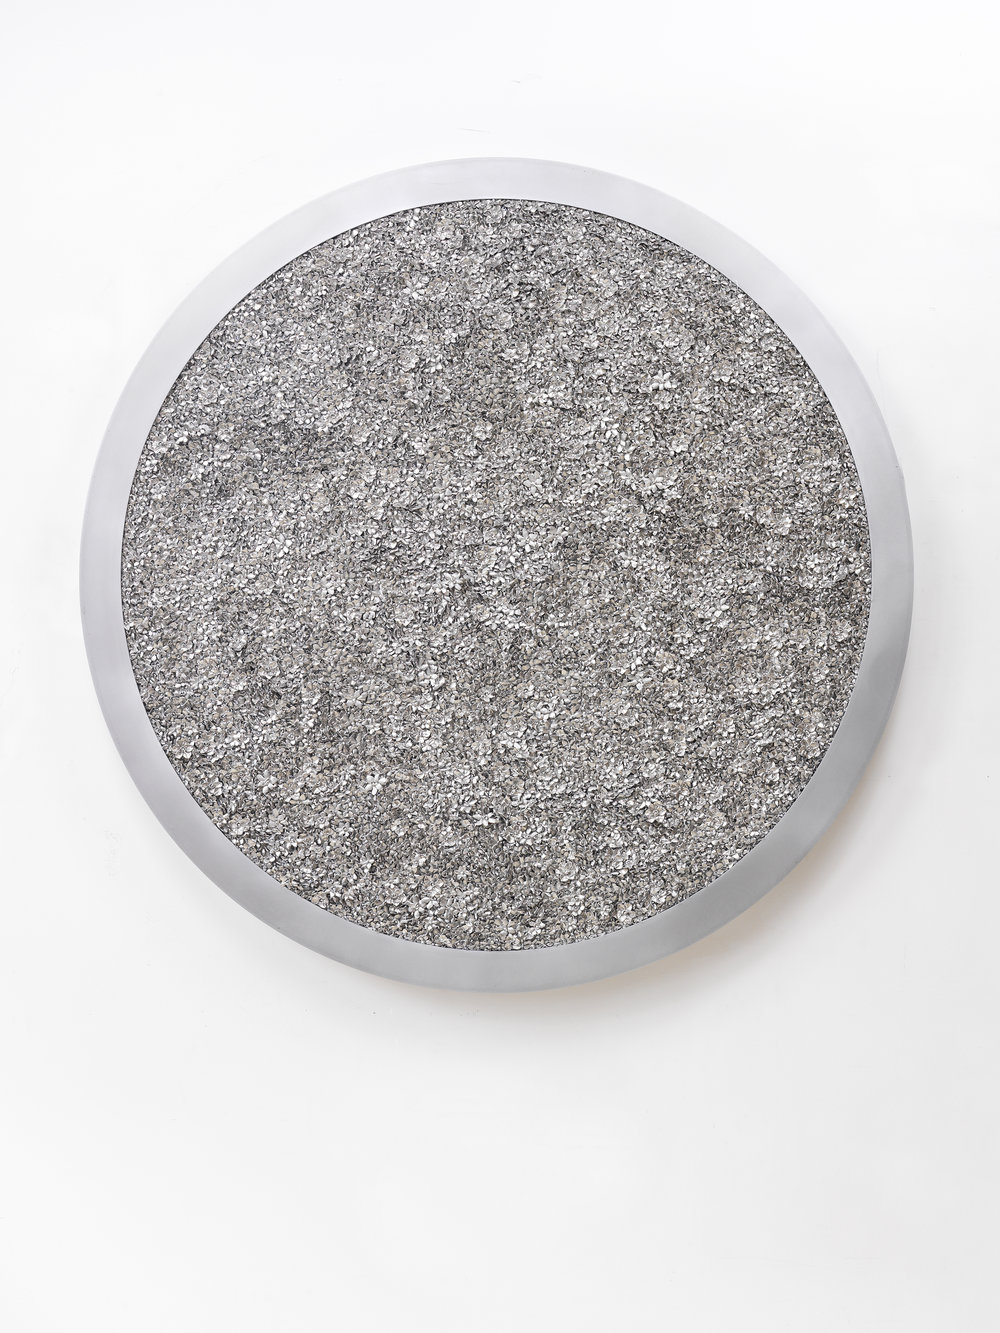 Gates of Narcissus: Motherboard Q1 (R2) , 2013  Steel, cast metal, waxed cotton, in artist's frame  48 inches diameter